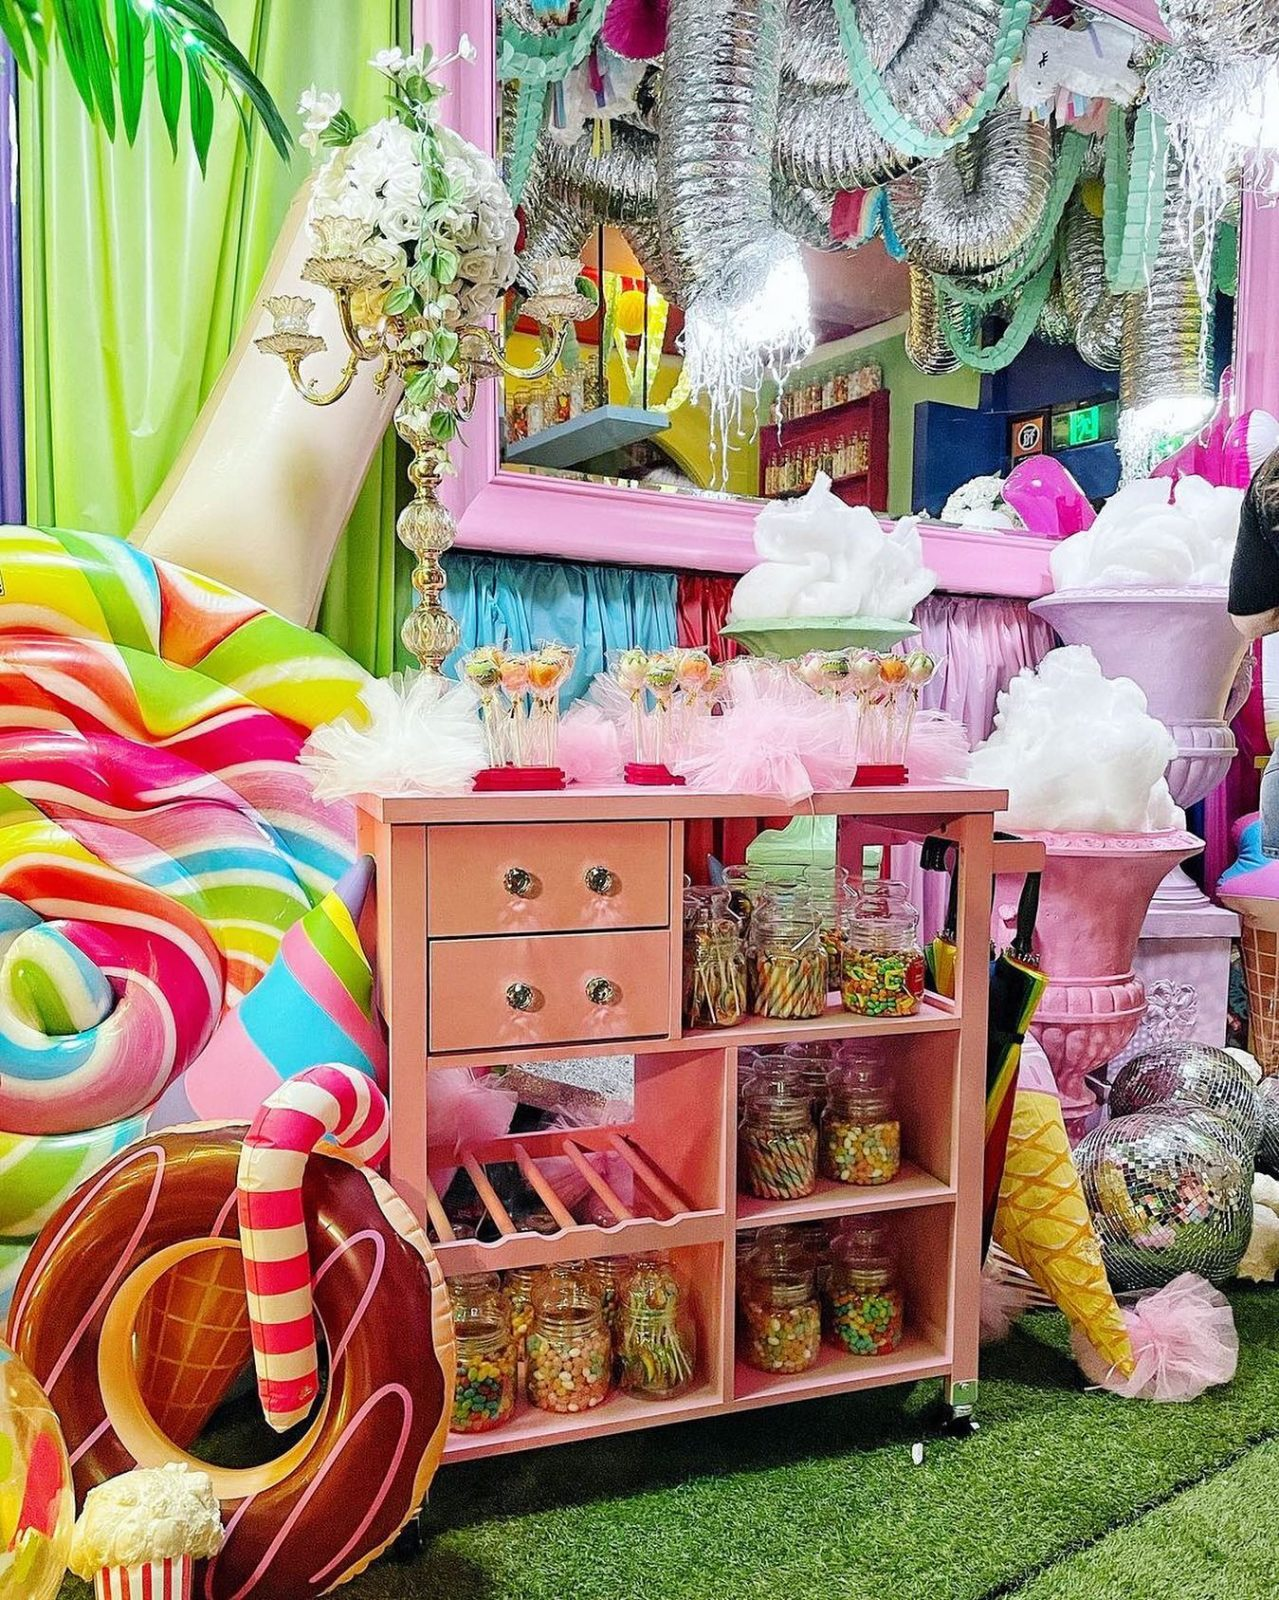 There's a 'candyland' immersive cocktail experience coming to Manchester, The Manc